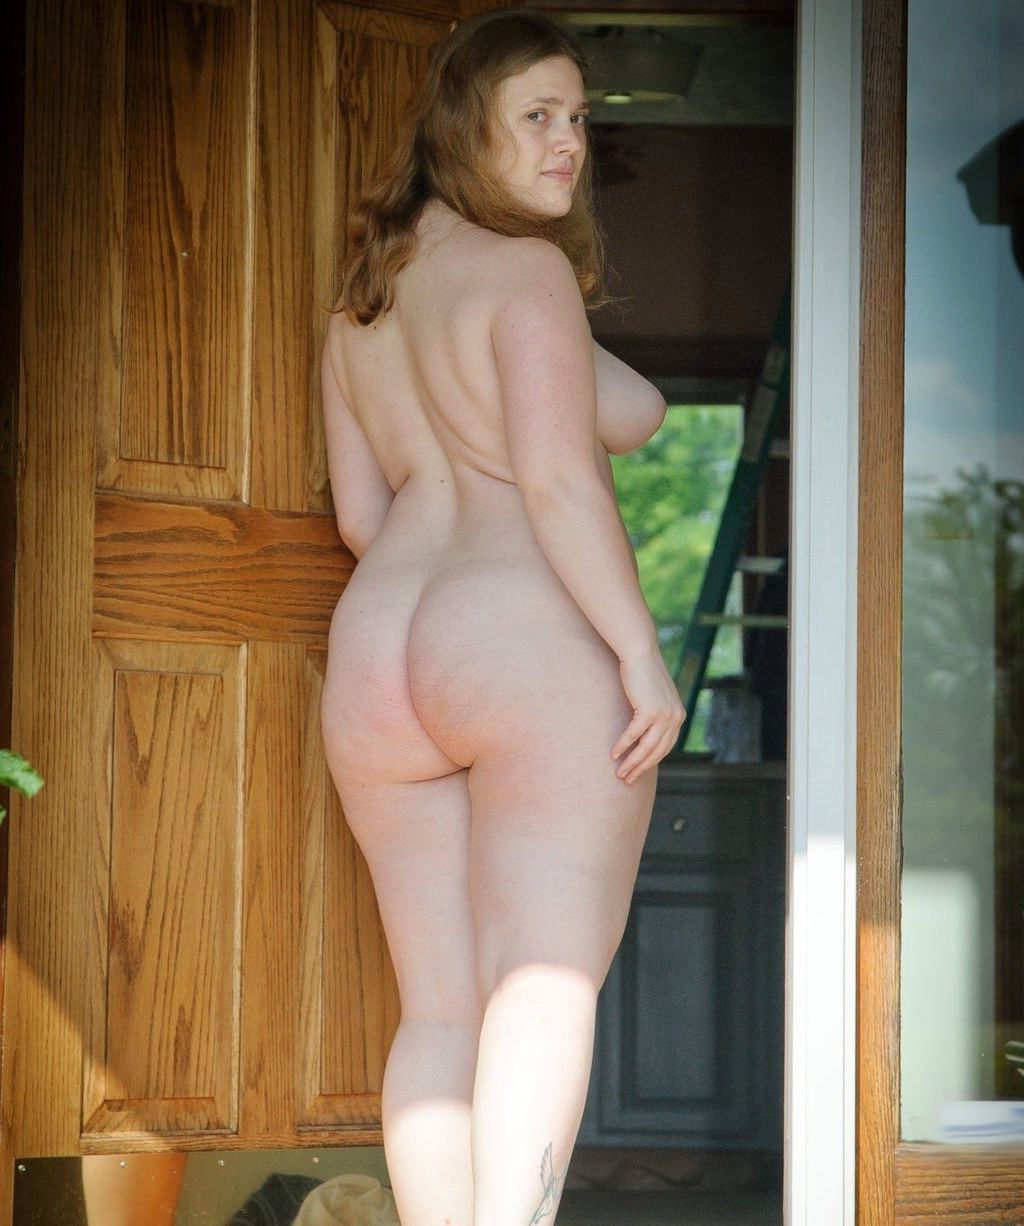 Xxx. beautiful. woman big ass. com